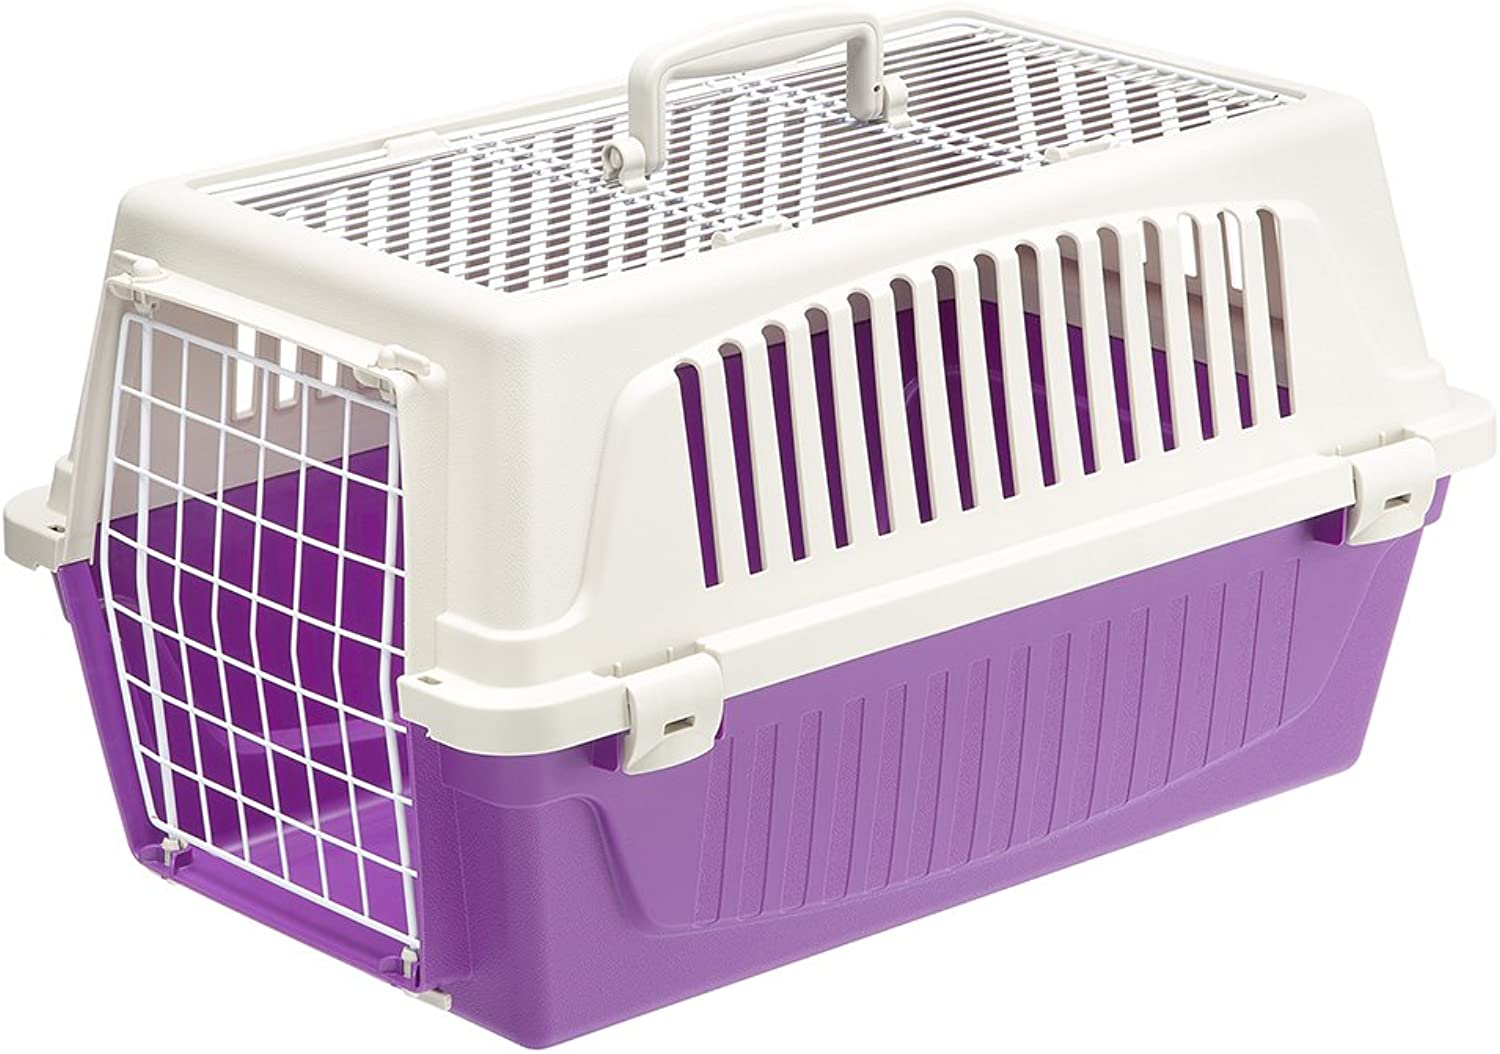 Ferplast Atlas 20 Top Opening Cat and Dog Carrier, Purple